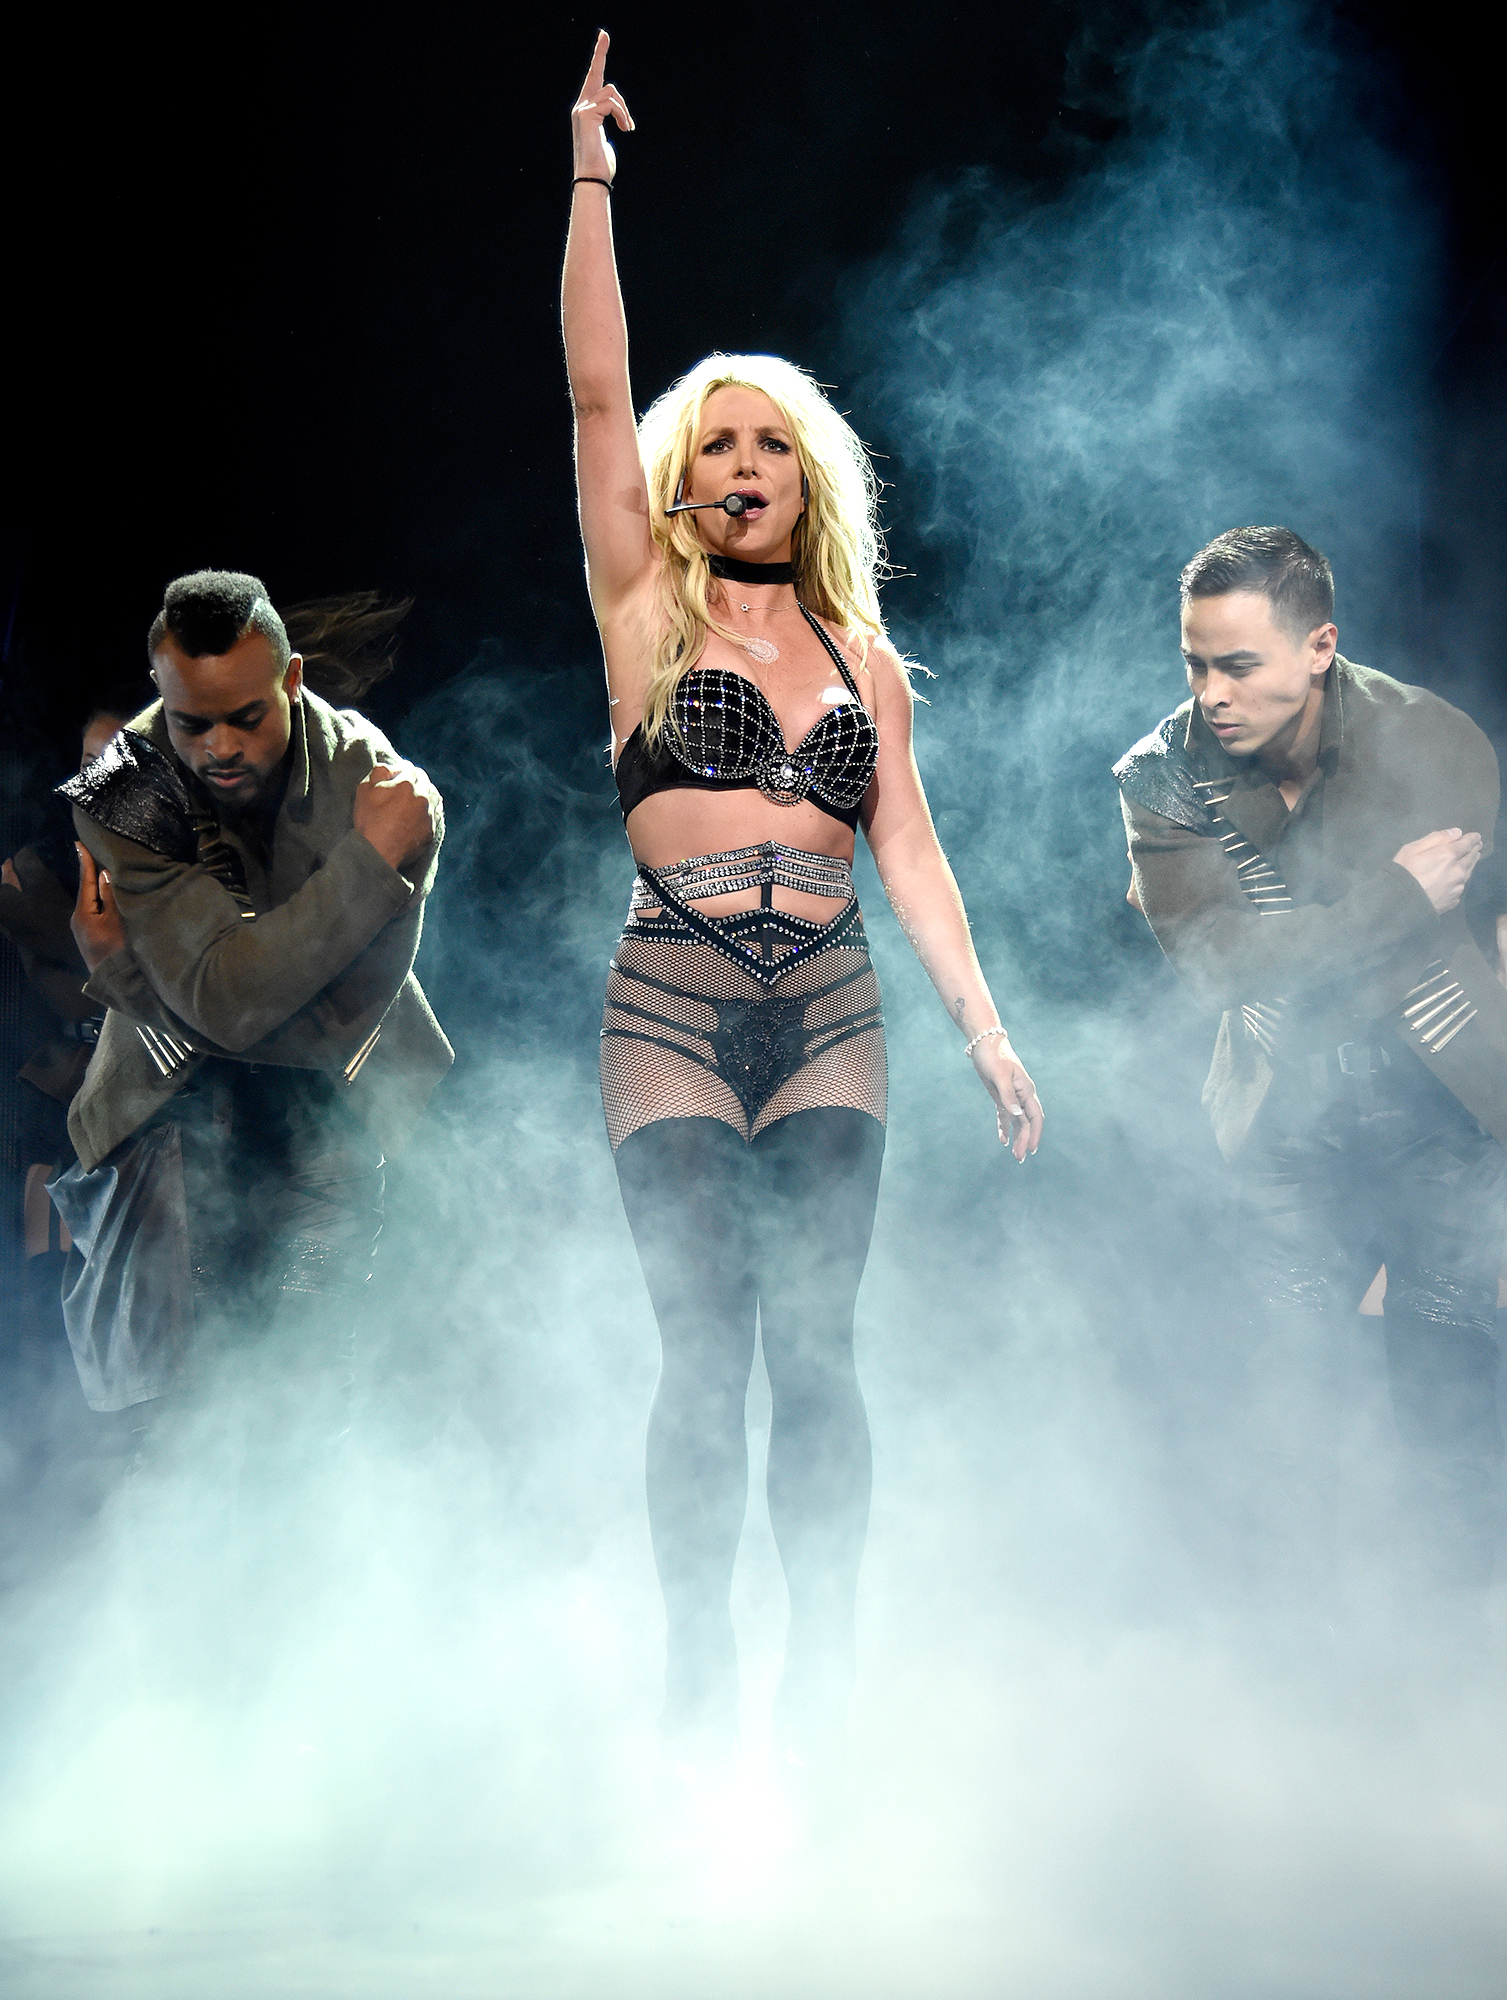 Britney Spears Lands Movie Deal for 'Once Upon a One More Time' Musical Amid Treatment